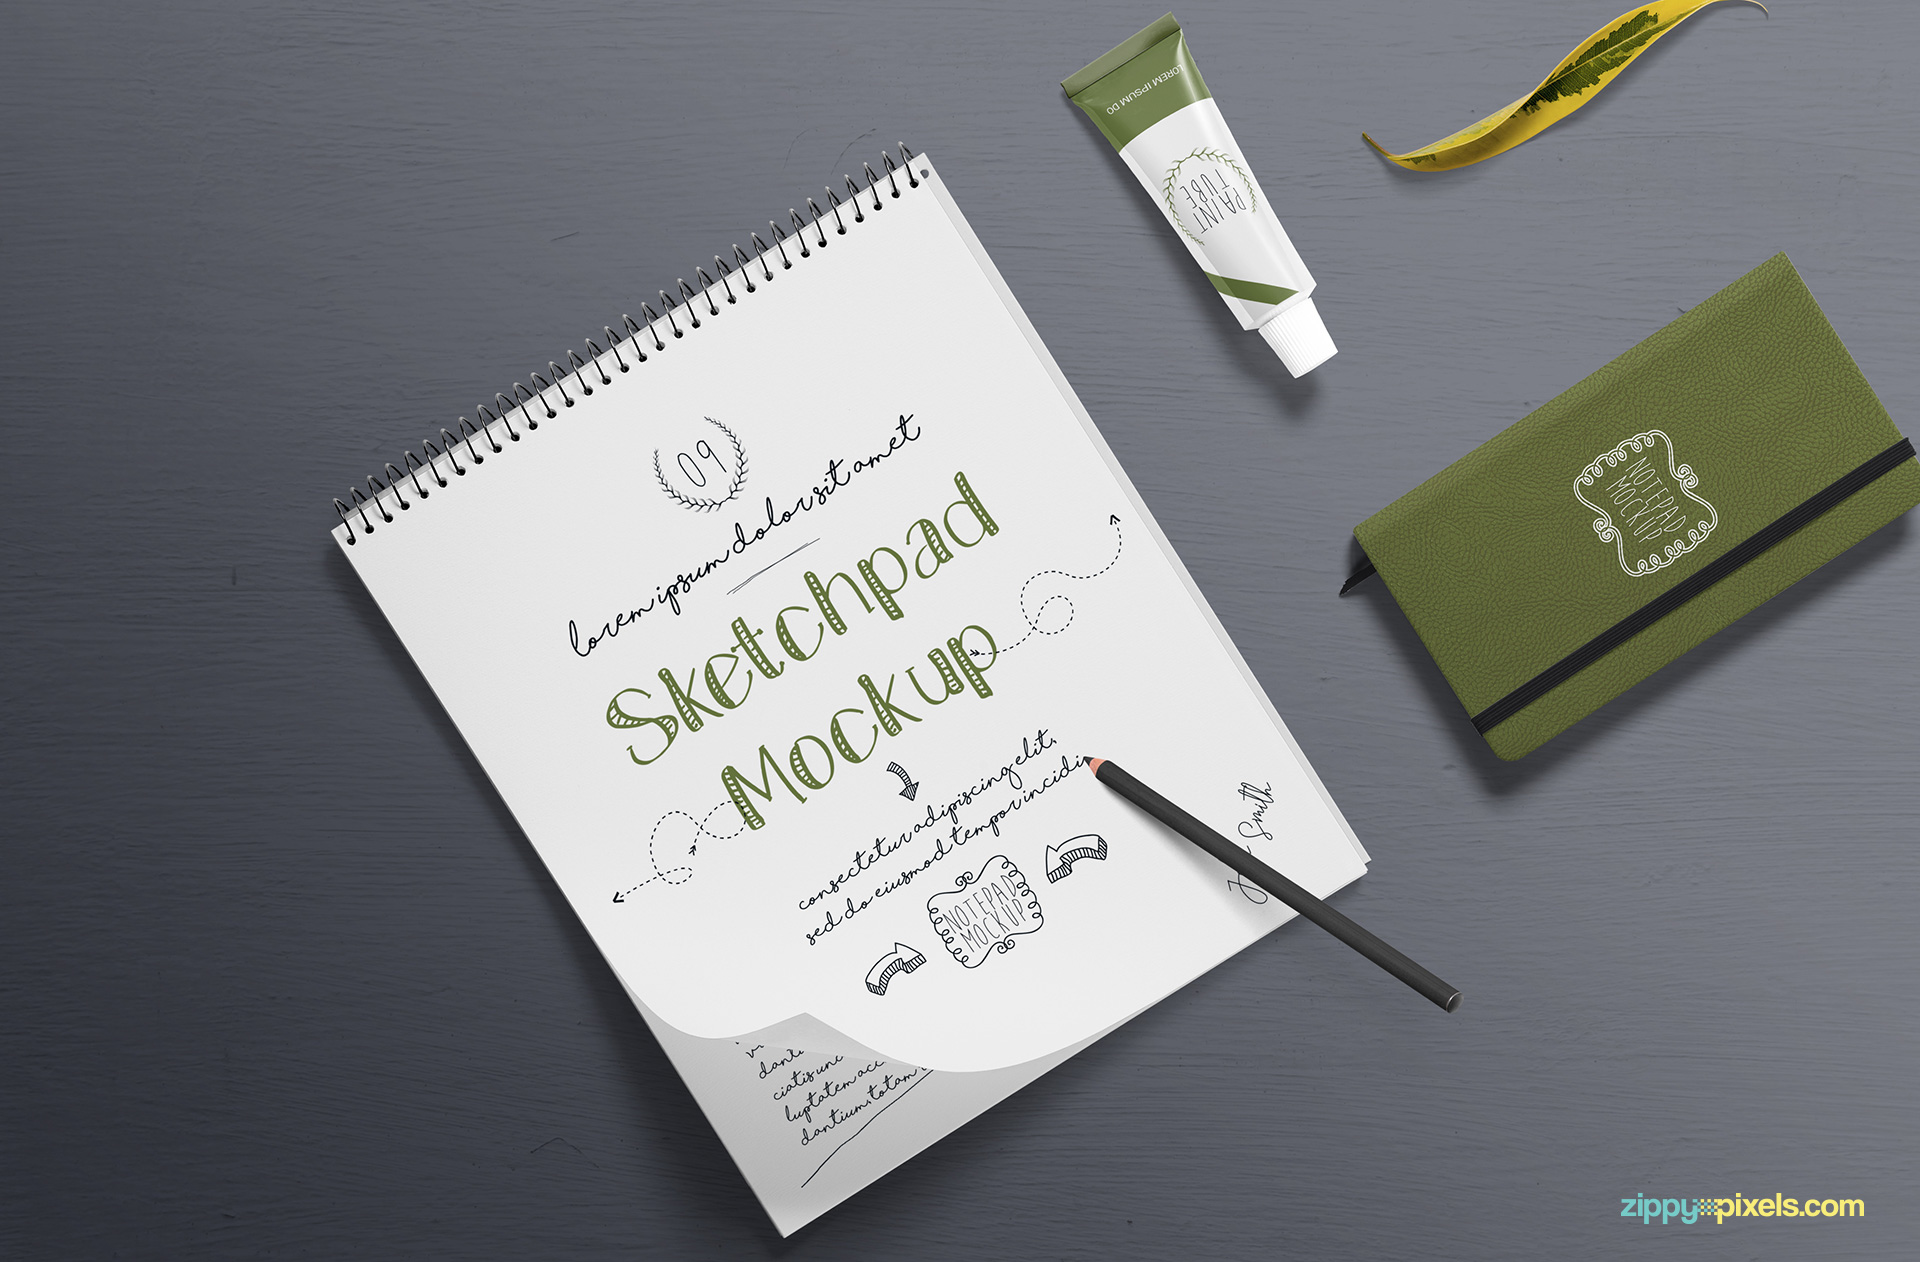 Sketchpad mockup with smart object feature.